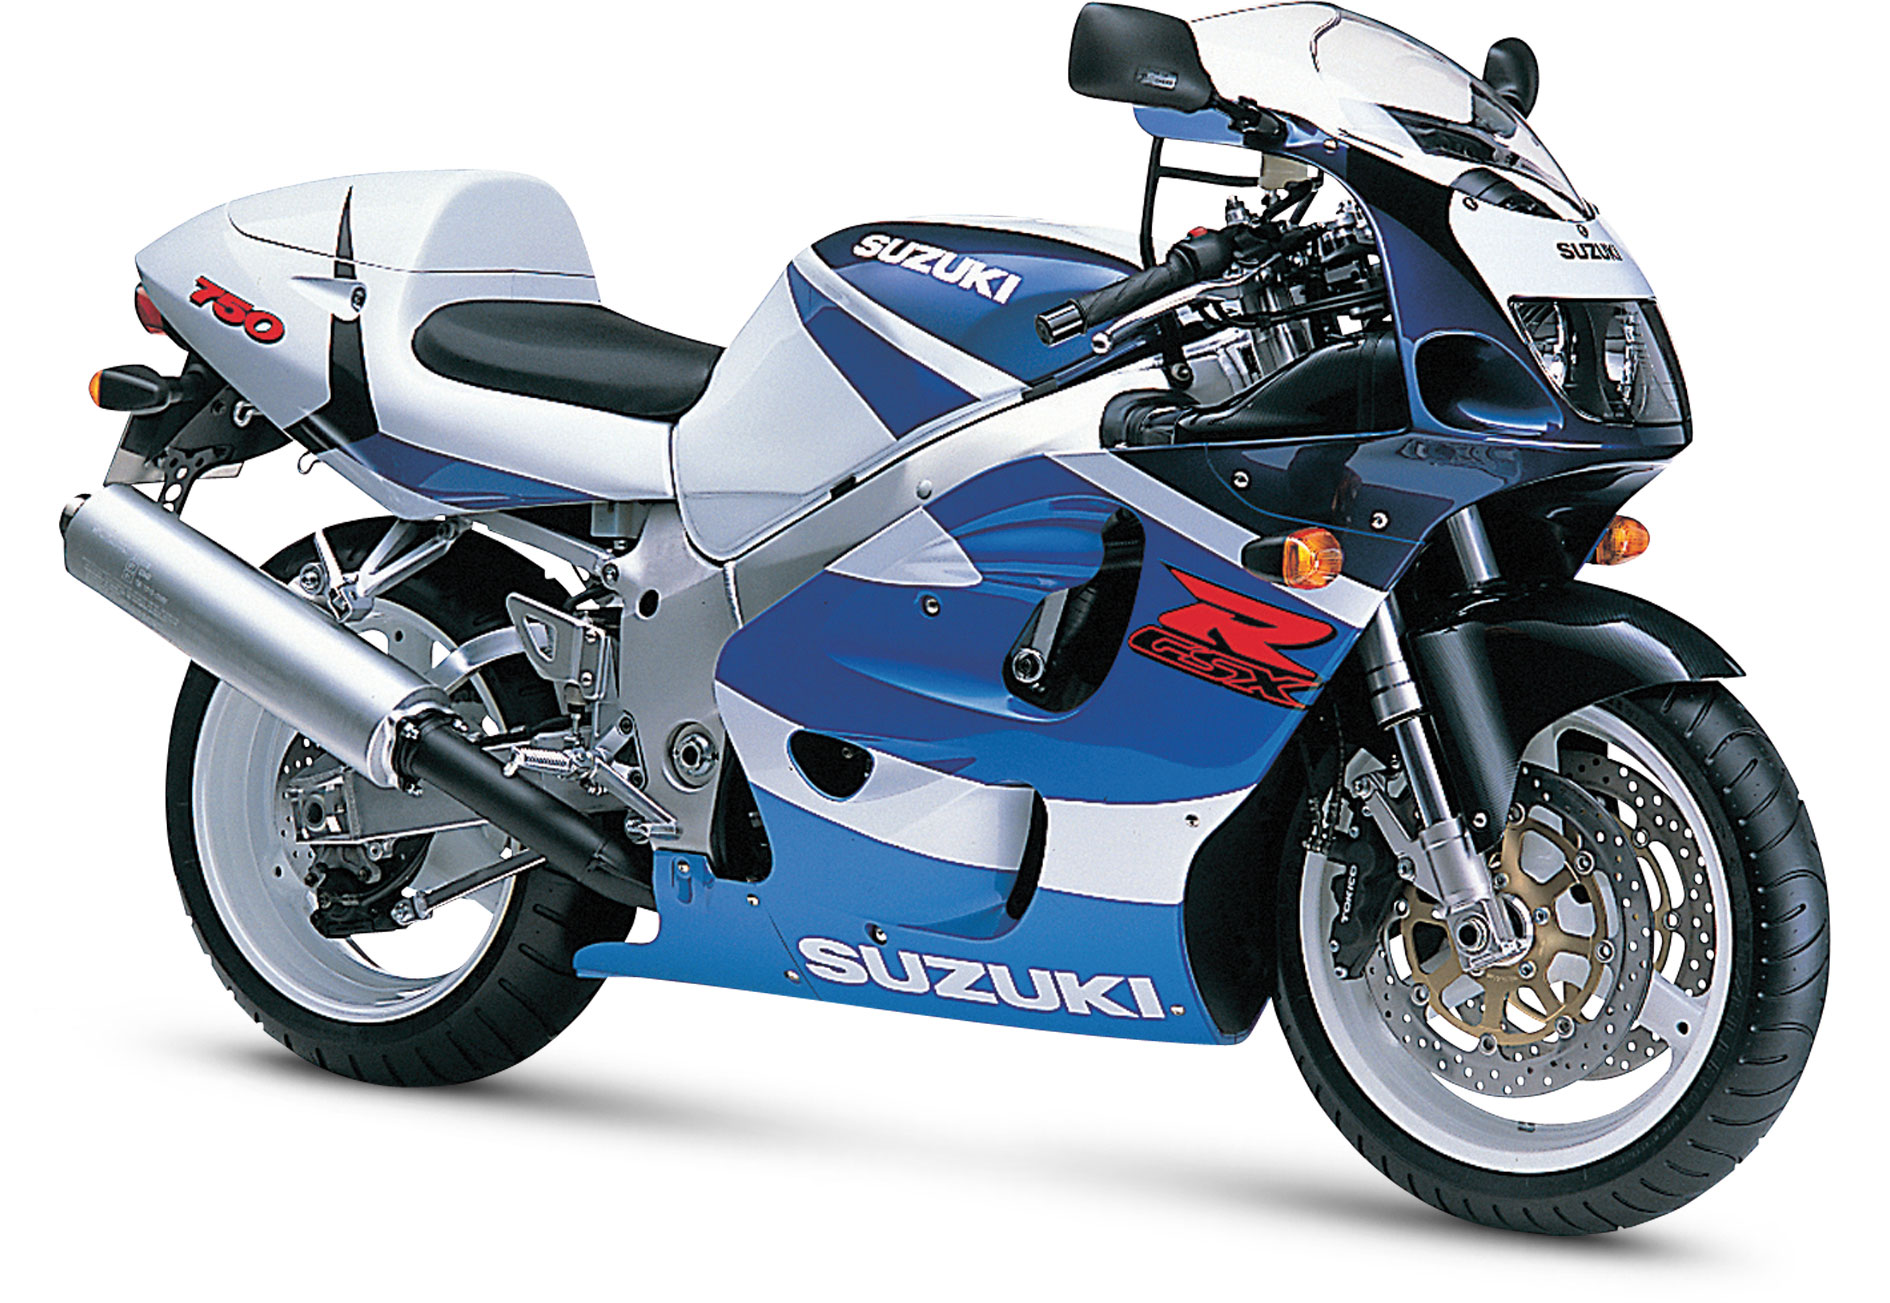 1998 suzuki gsx r 750 pics specs and information. Black Bedroom Furniture Sets. Home Design Ideas